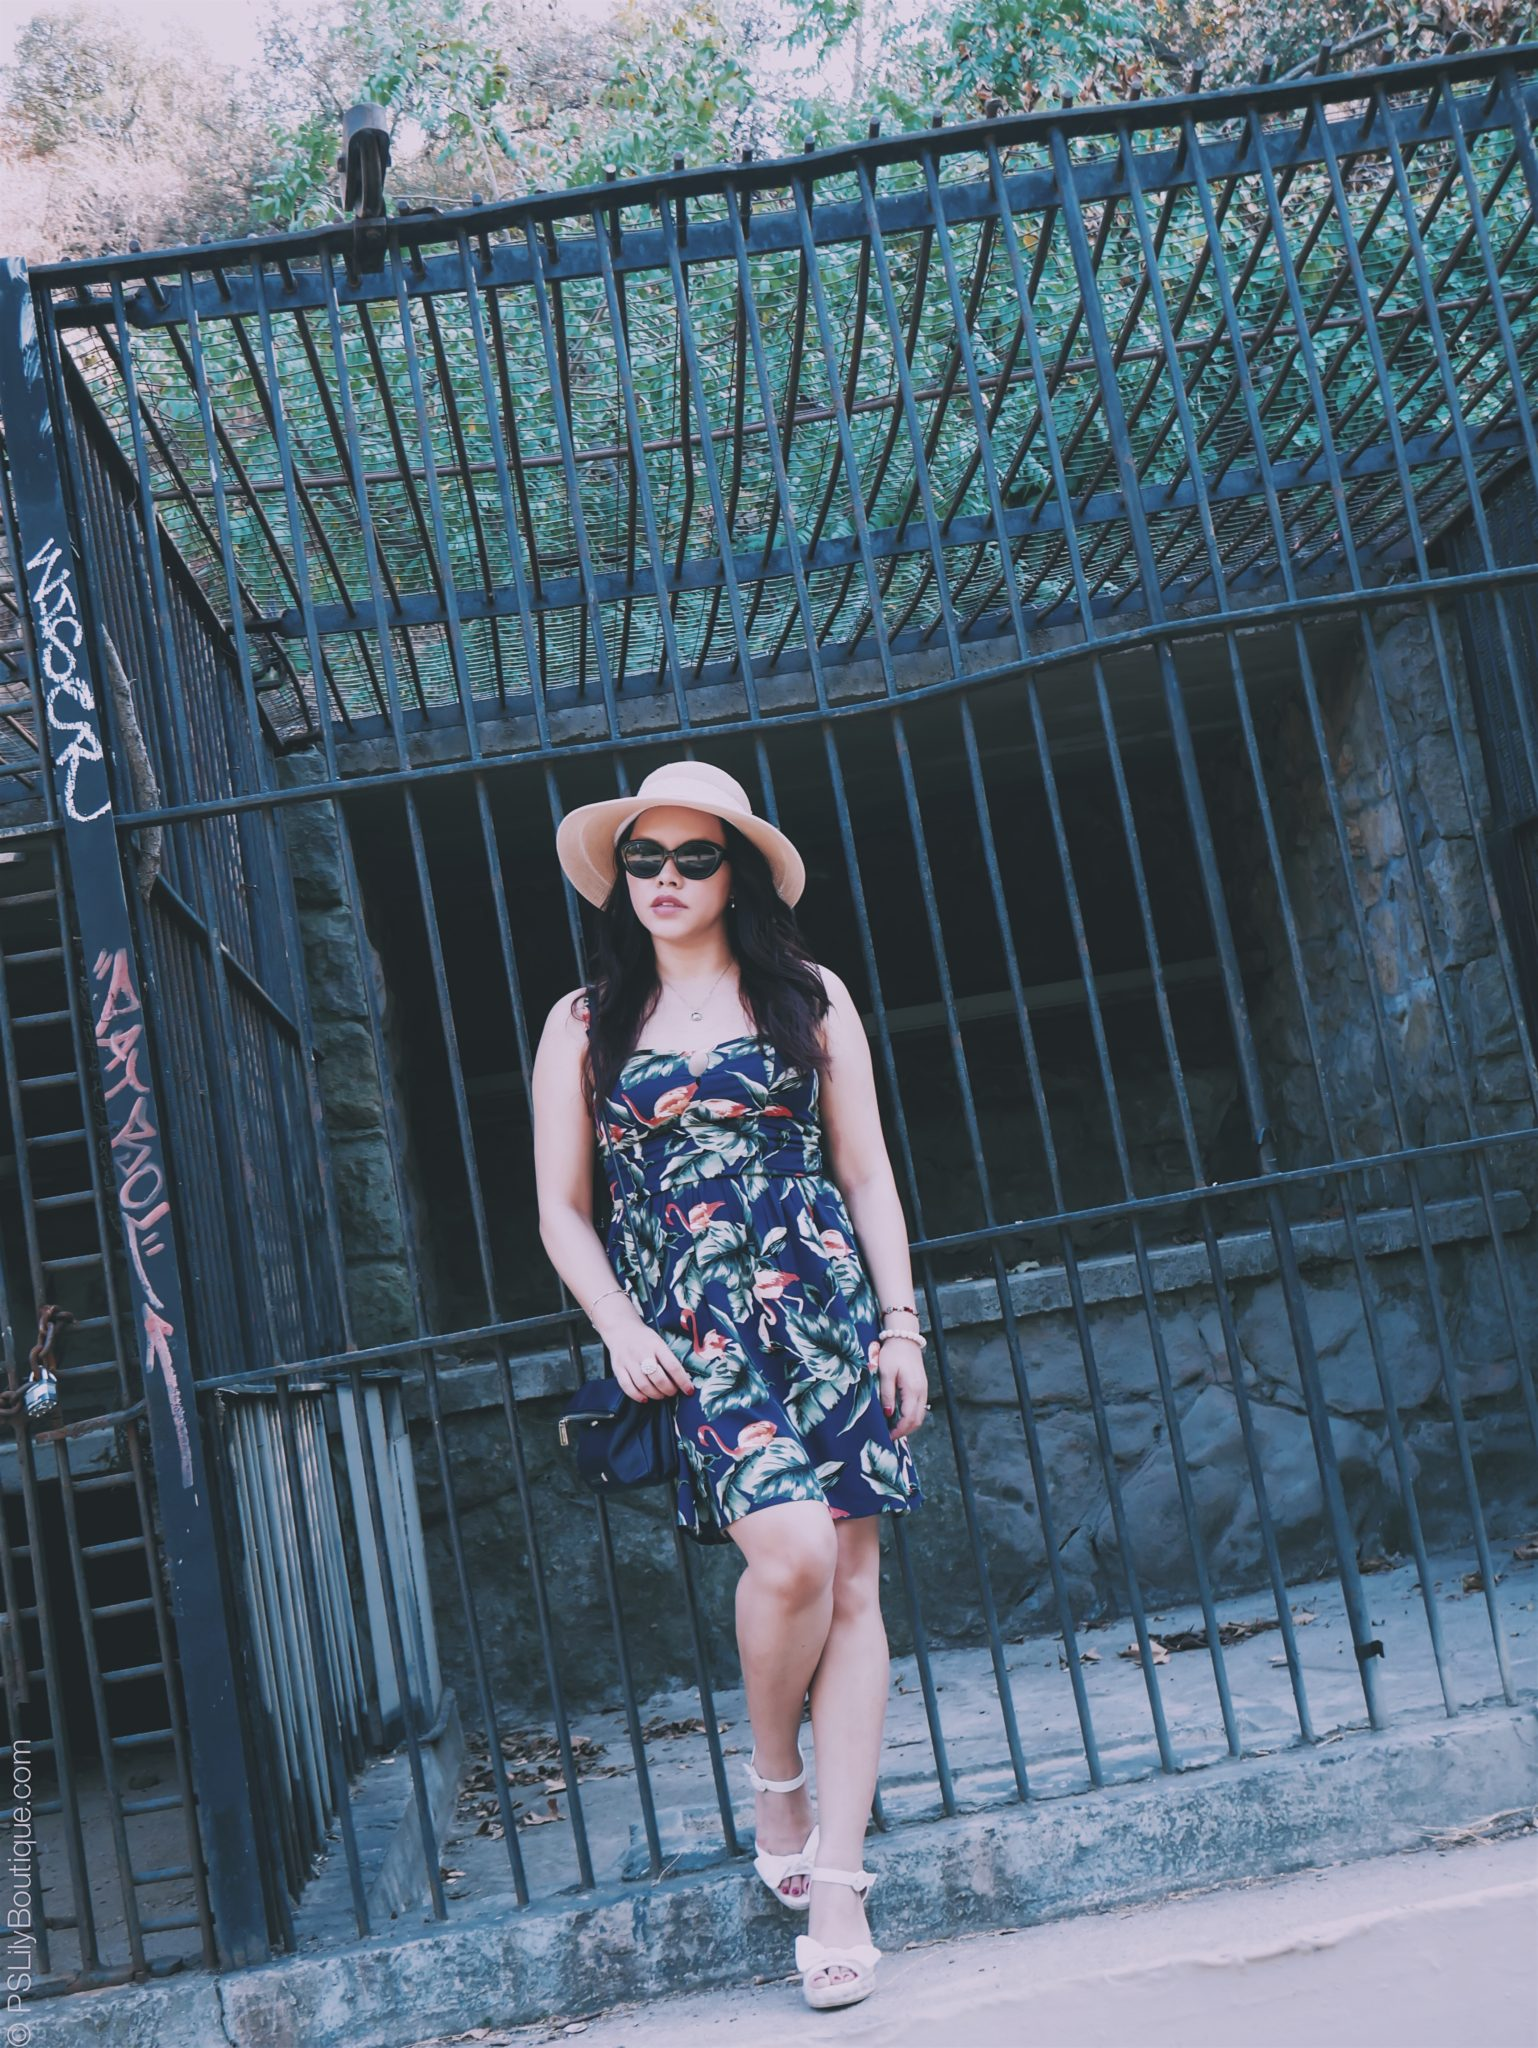 Extra Tropical... | PSLily Boutique - A Fashion & Personal Style Blog. Instagram: @pslilyboutique, Pinterest, Los Angeles fashion blogger, top fashion blog, best fashion blog, fashion & personal style blog, travel blog, travel blogger, LA fashion blogger, Spring & Summer 2018 Outfit Ideas, Navy Blue Palm Print & Flamingo Sun Dress, Travel Outfit, OOTD, 8.15.18